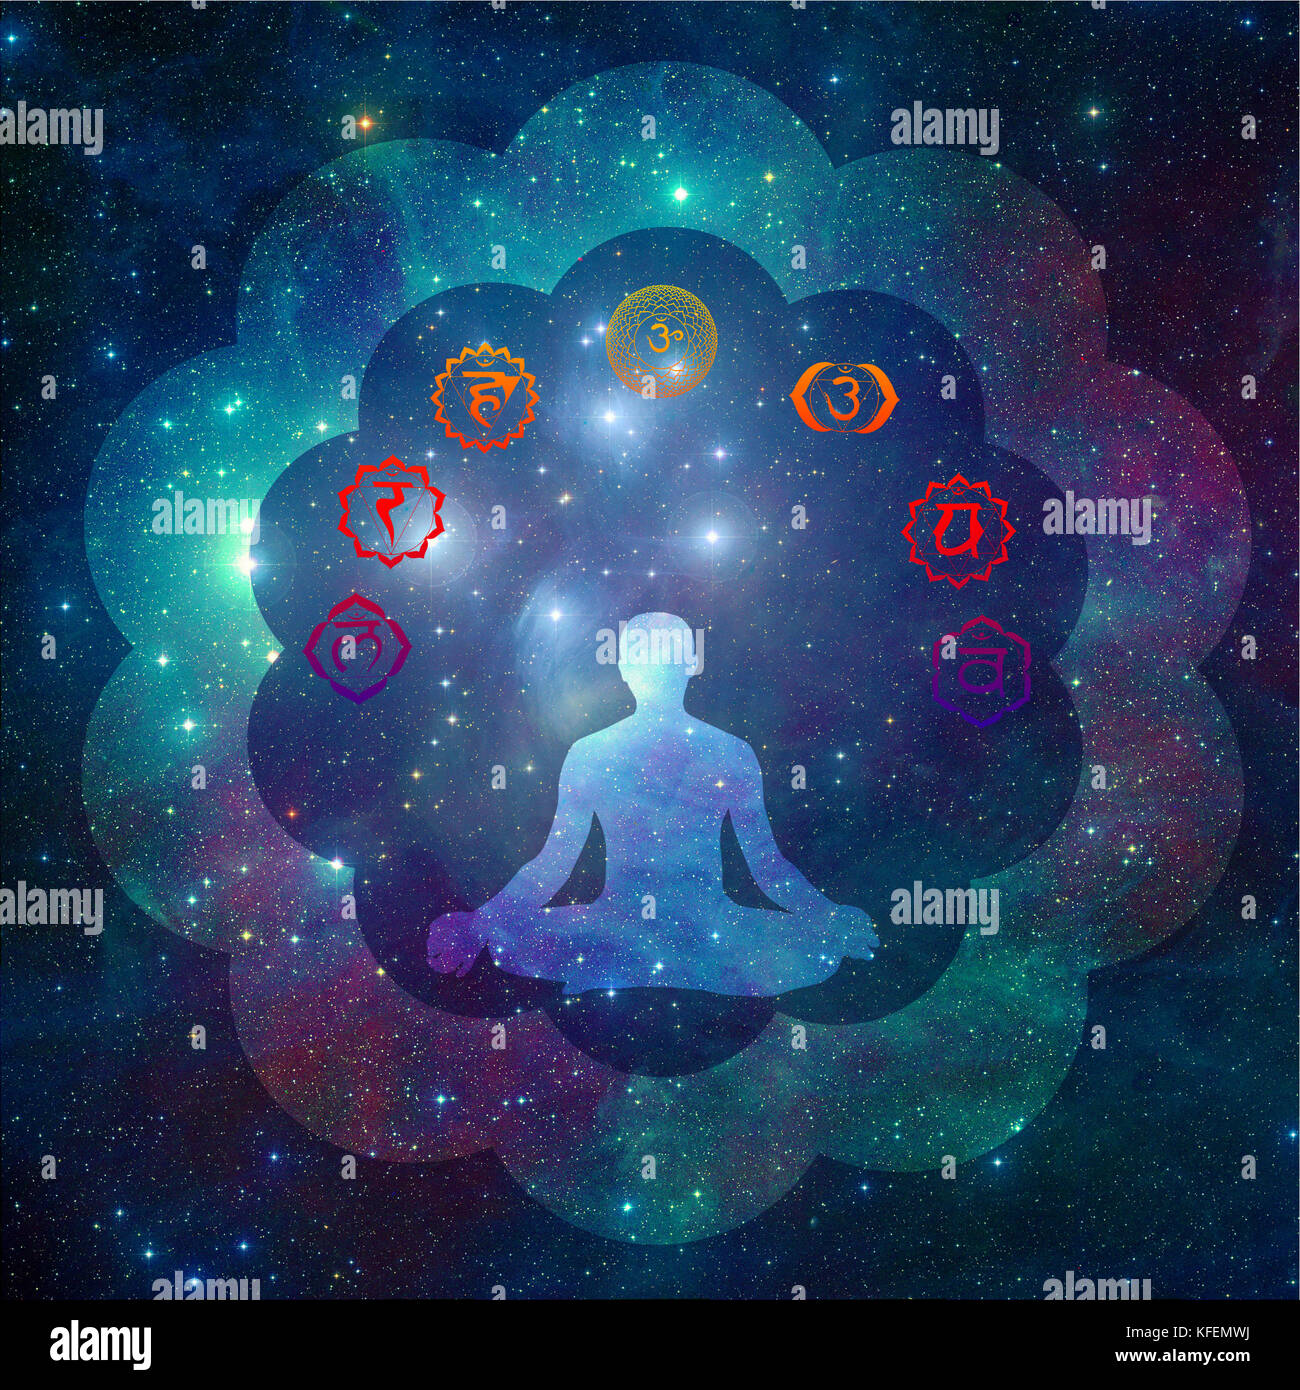 Chakra symbols and silhouette of a man in yoga lotus pose - Stock Image